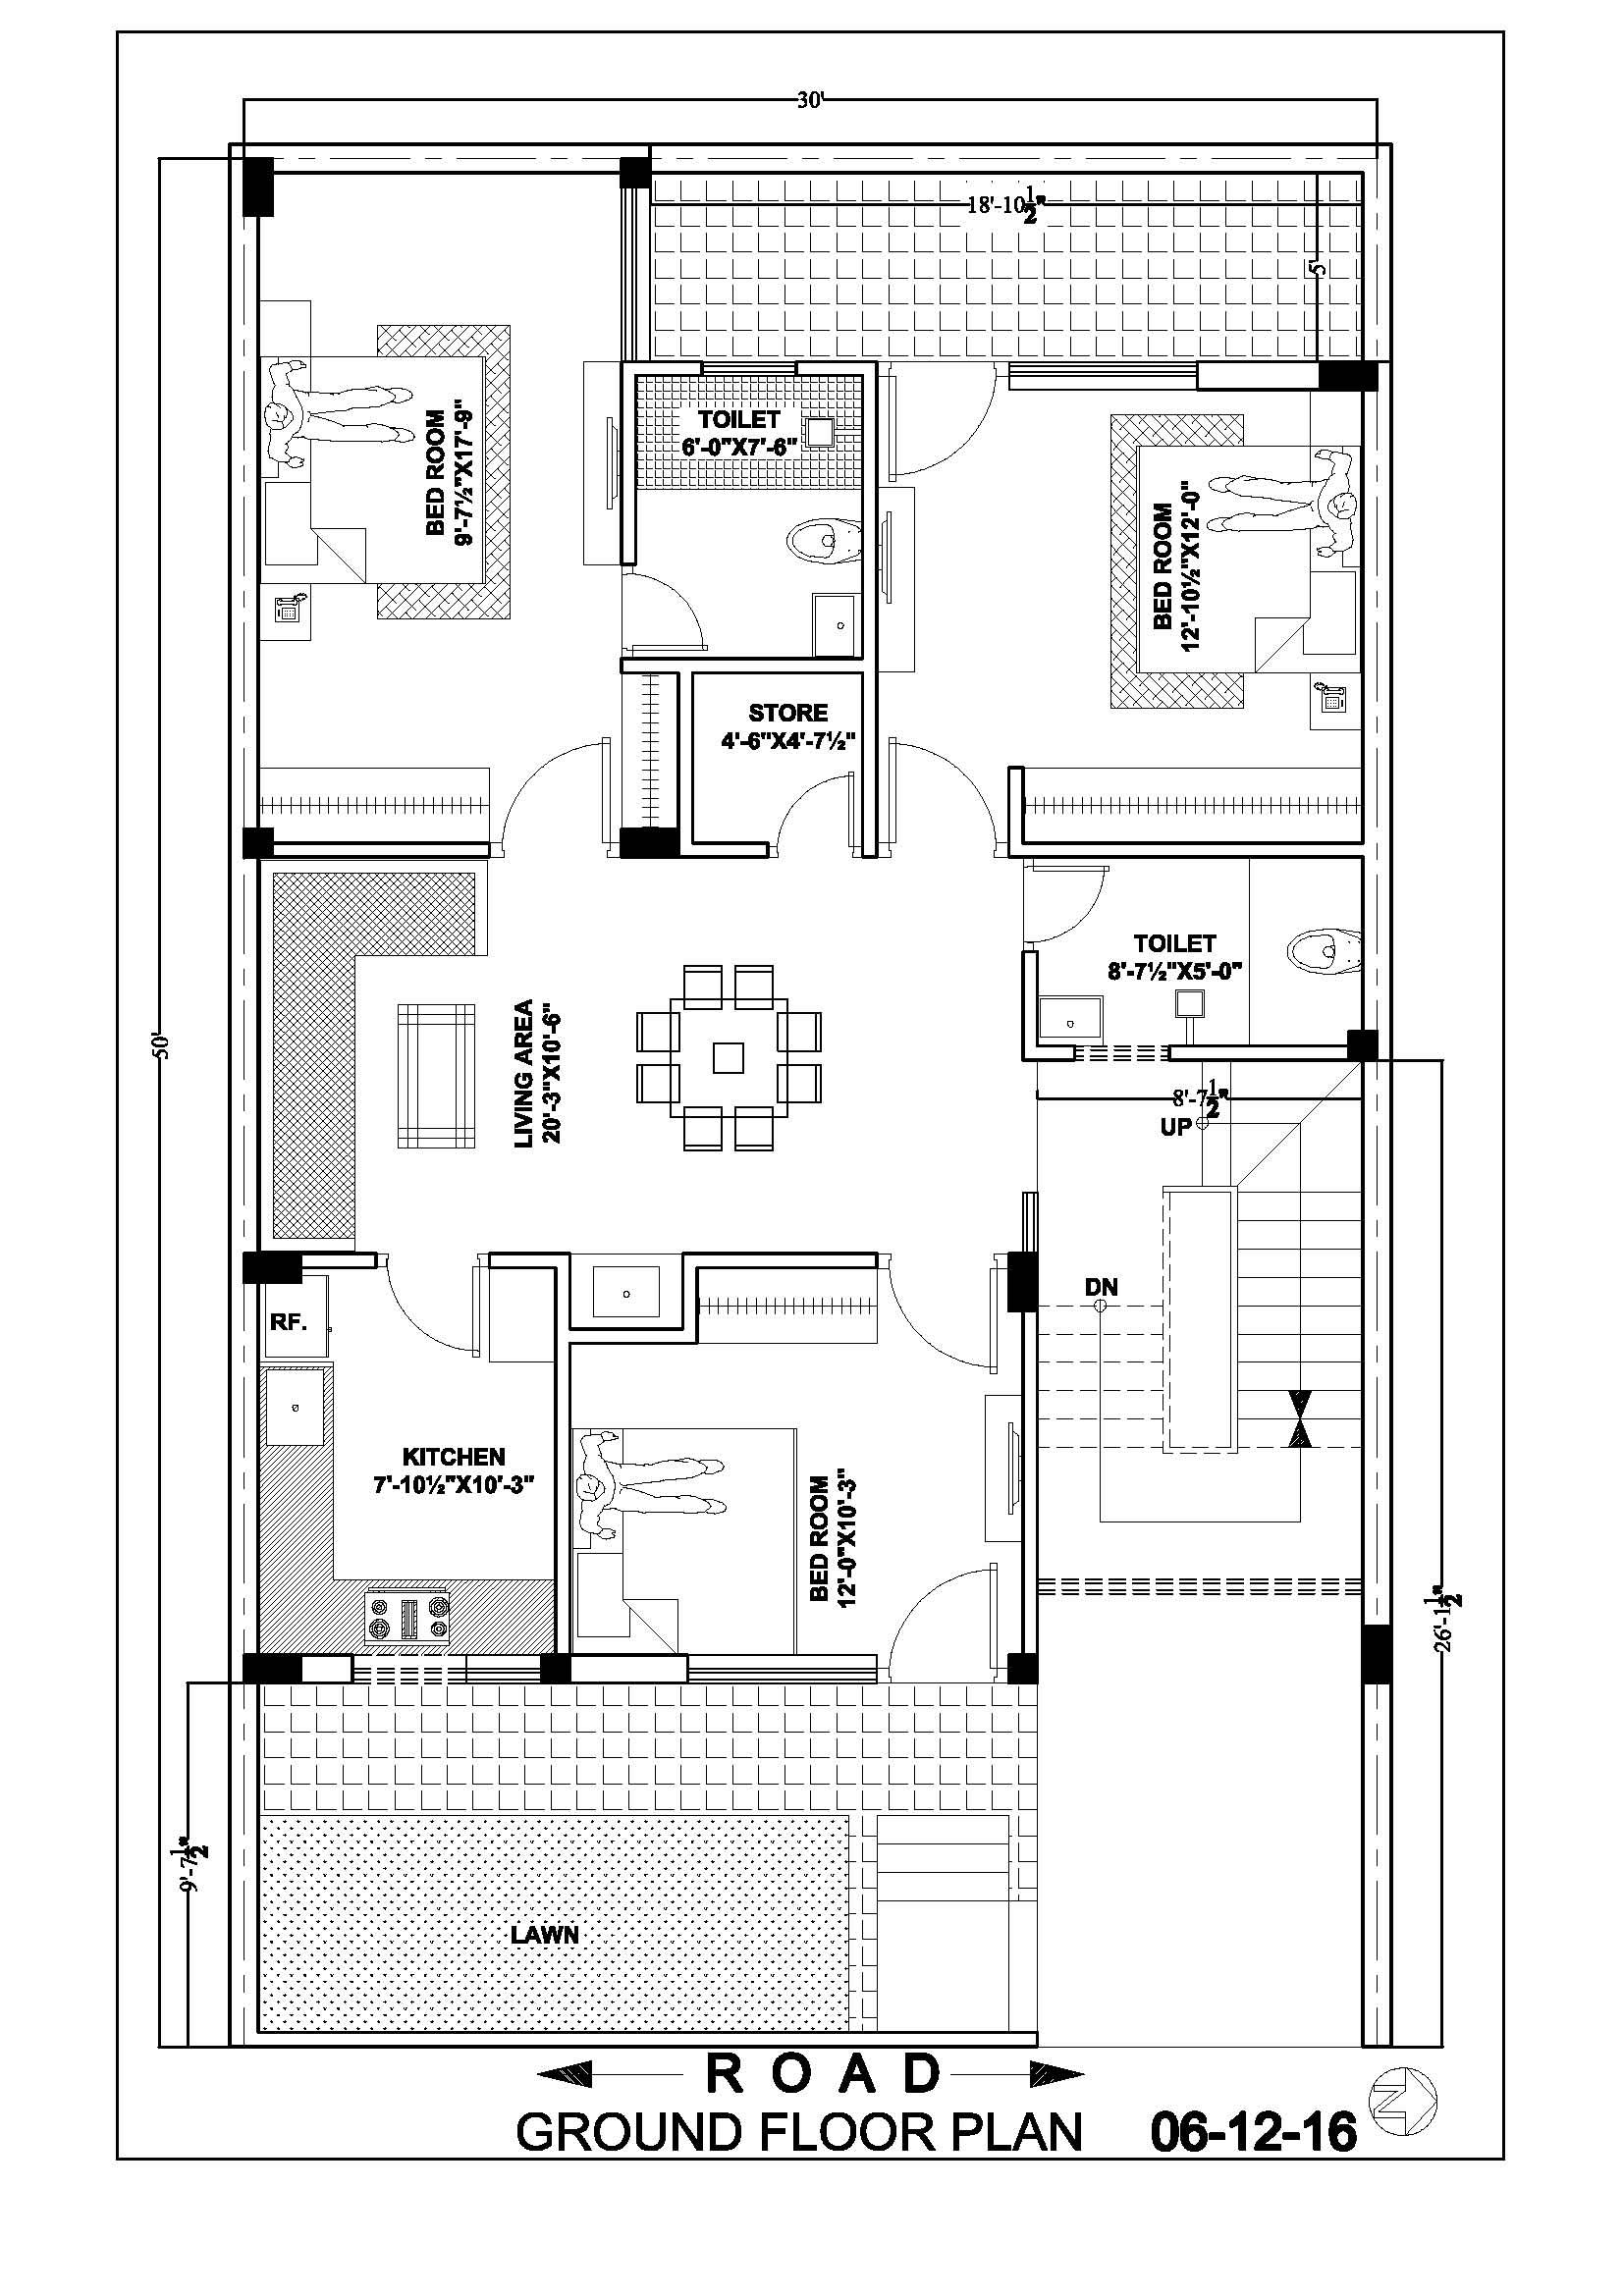 30 50 Ground Floor Plan